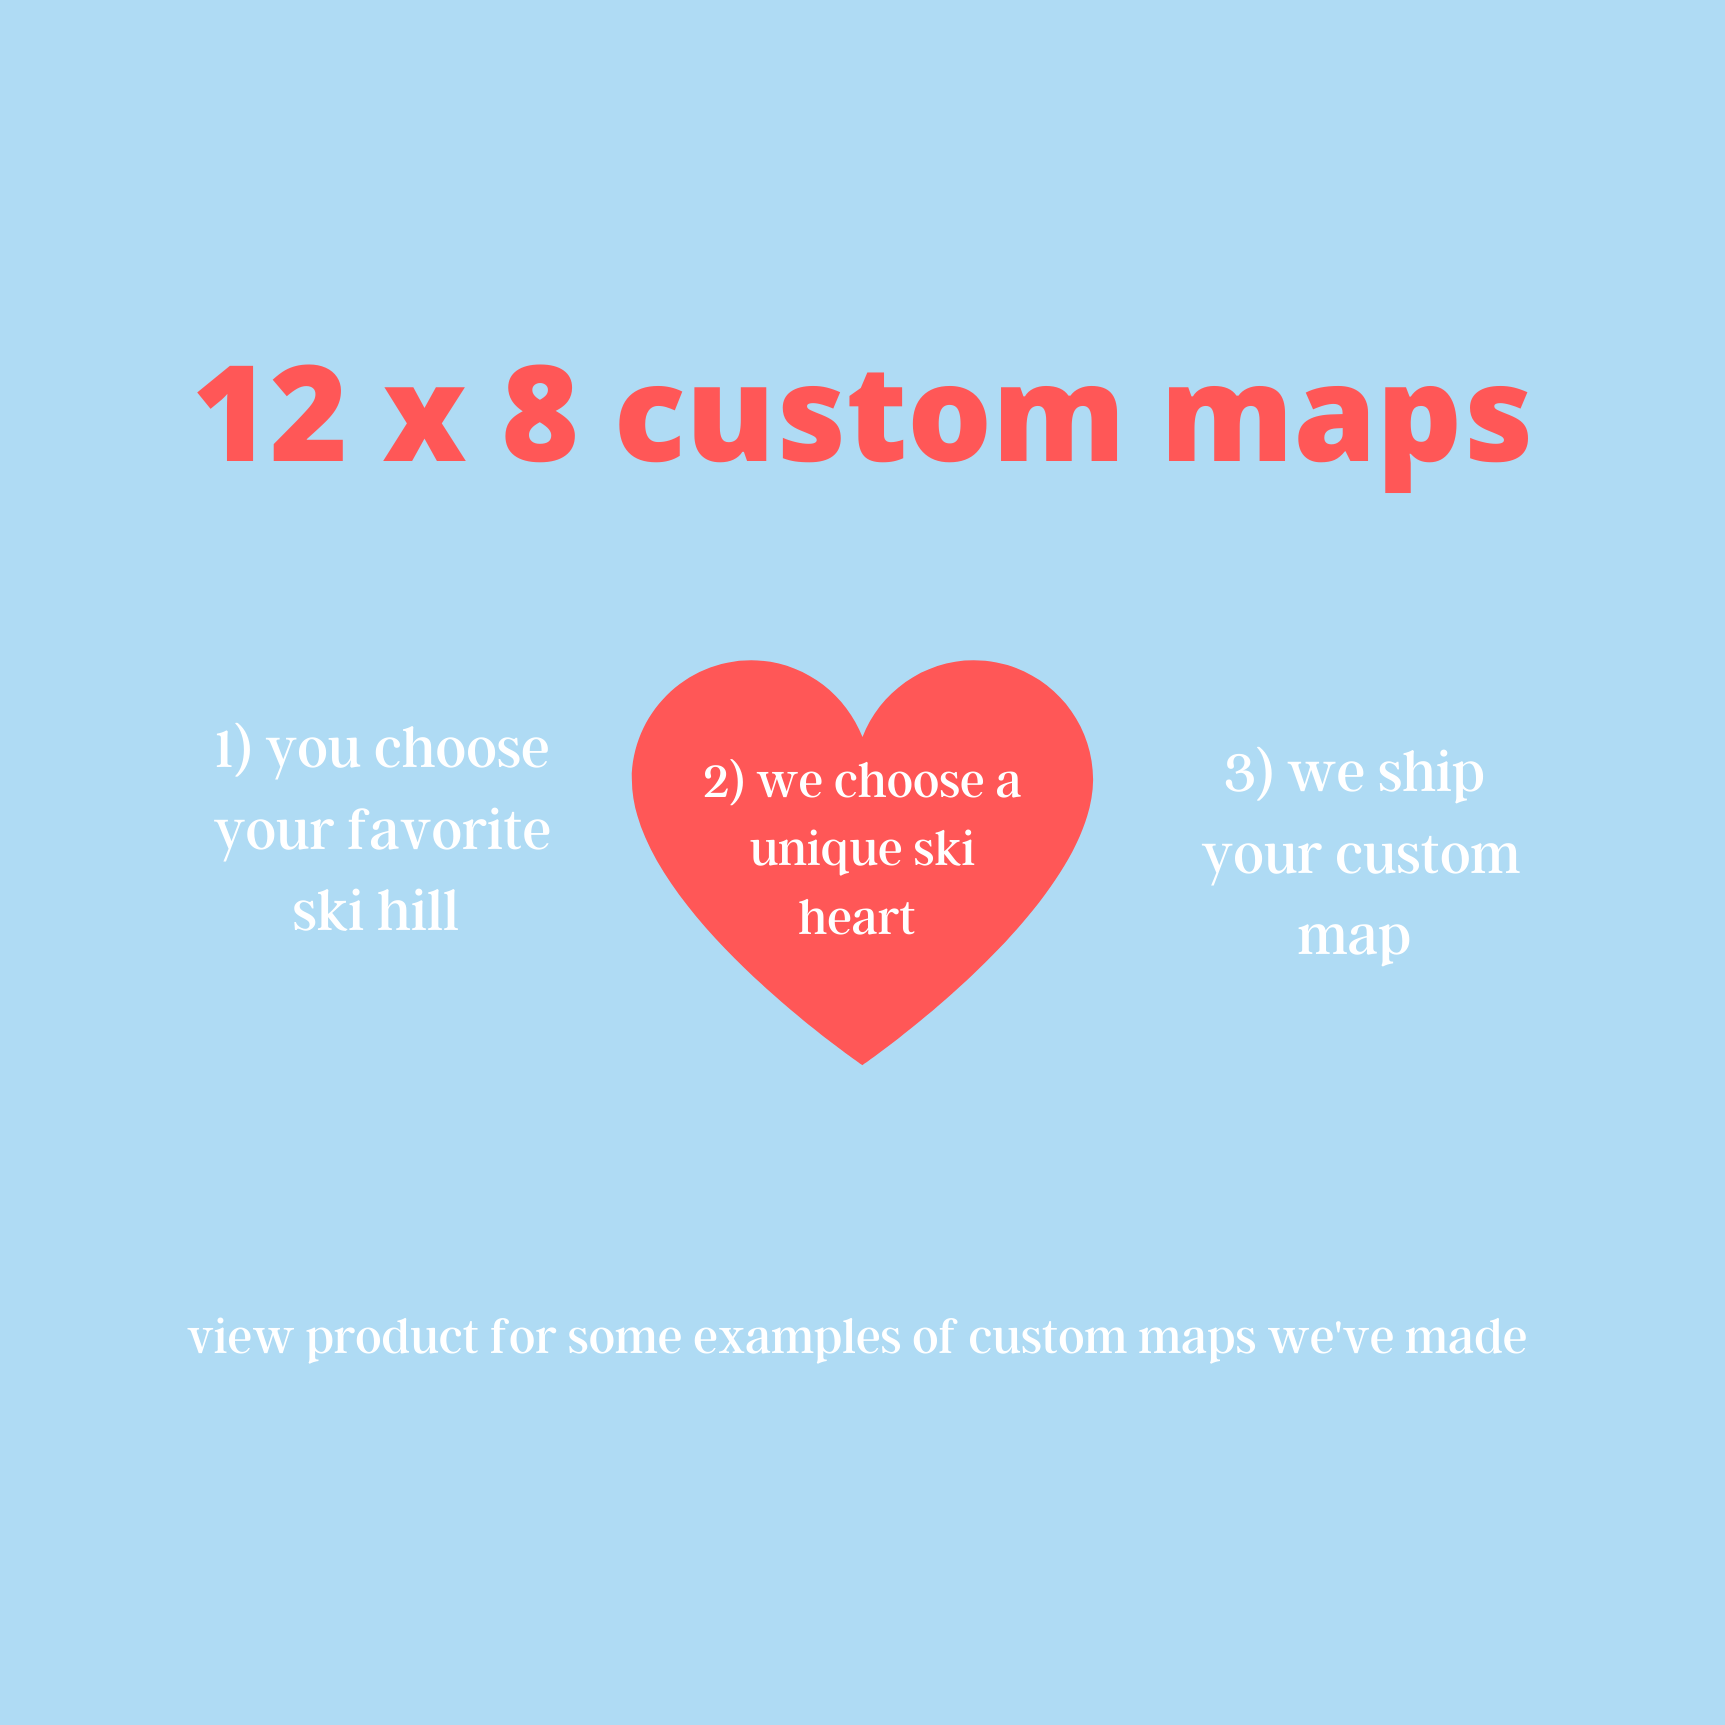 Custom wooden ski map + ski heart, 12x8